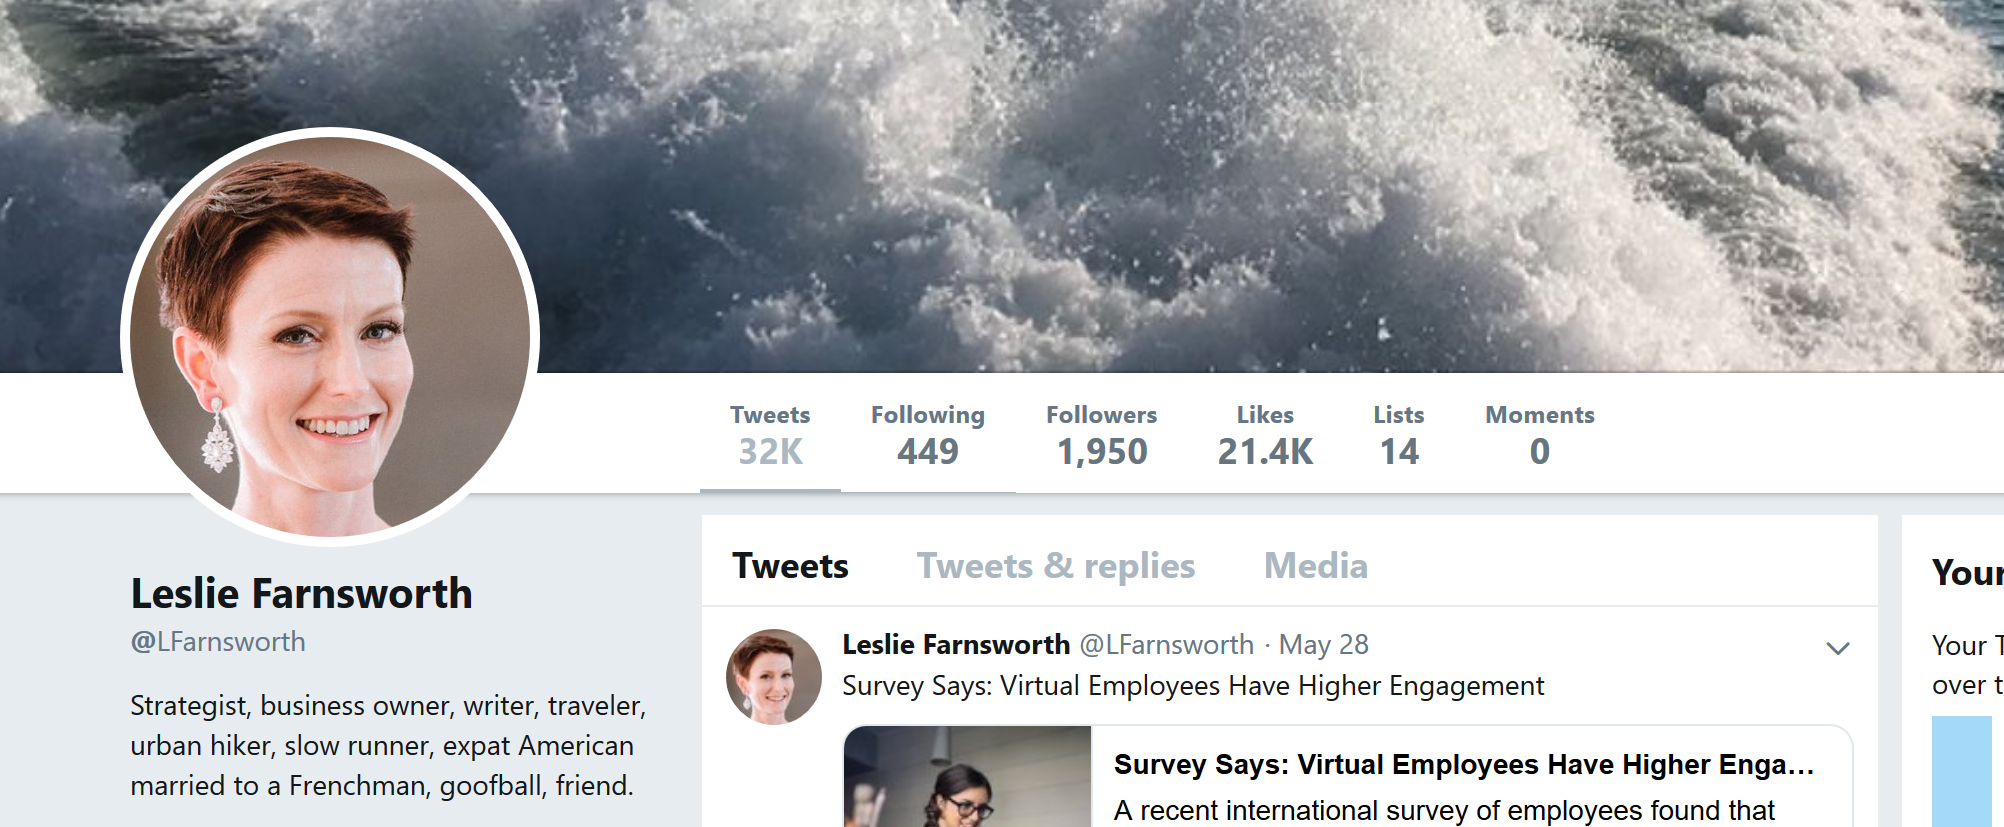 The header for my Twitter page: www.twitter.com/LFarnsworth.